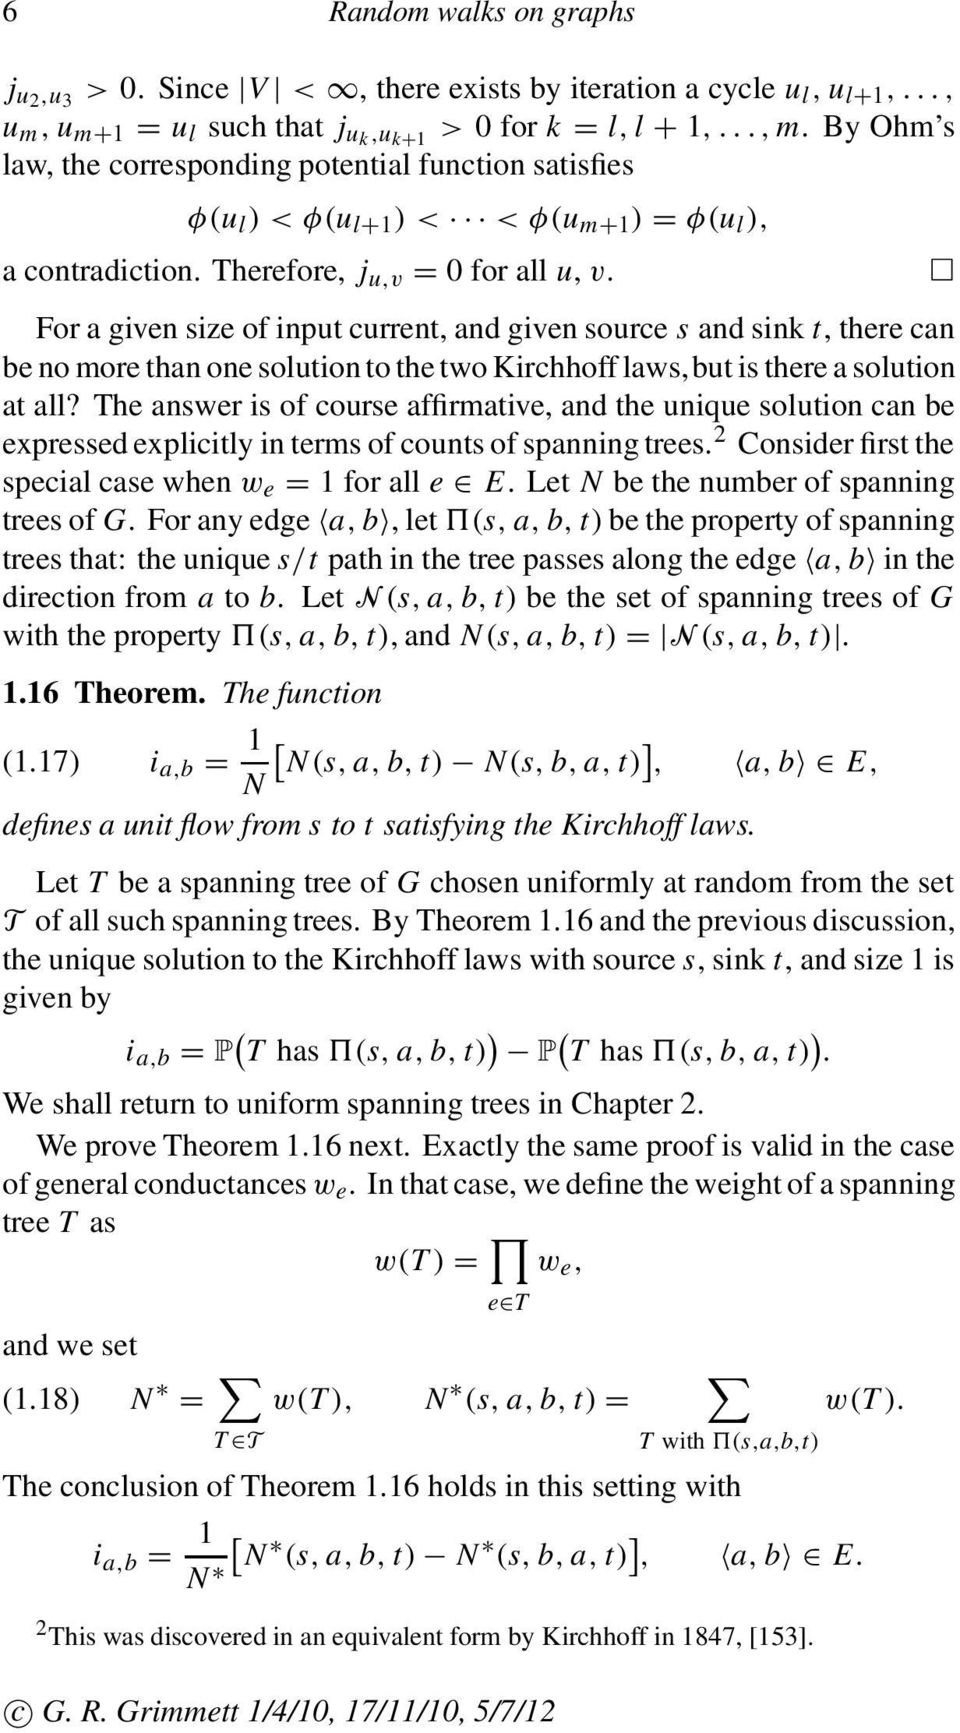 For a given size of input current, and given source s and sink t, there can be no more than one solution to the two Kirchhoff laws,but is there a solution at all?